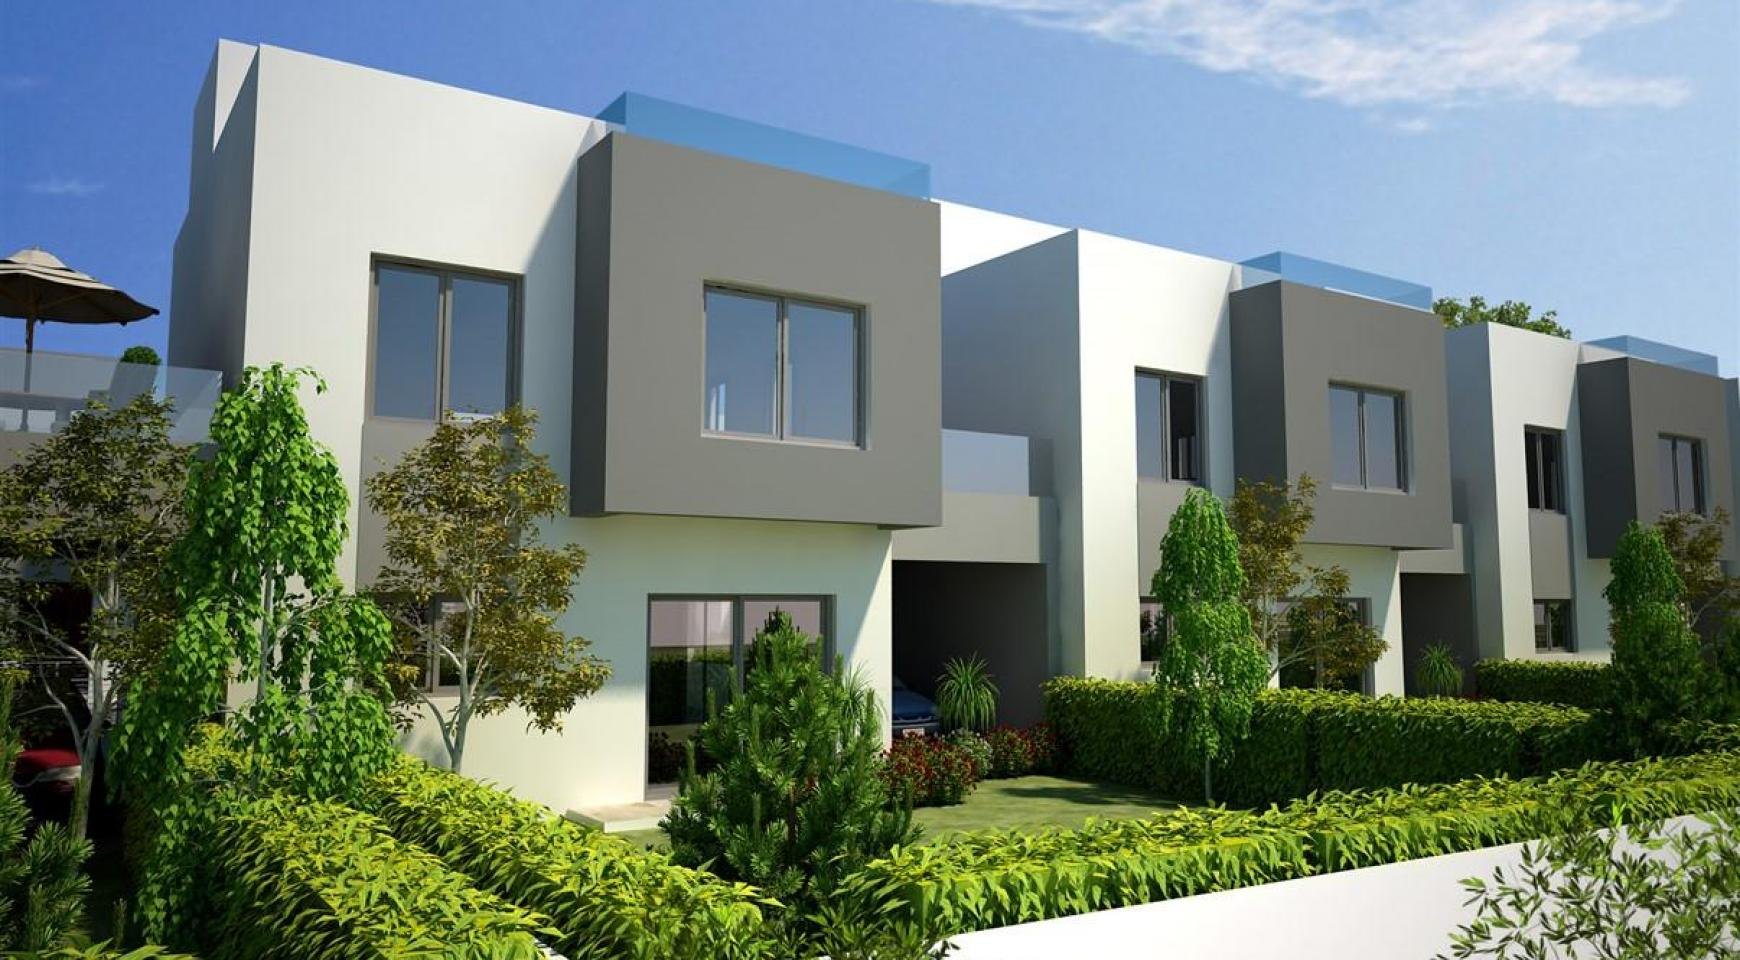 3 Bedroom Villa in New Project in Paphos - 32